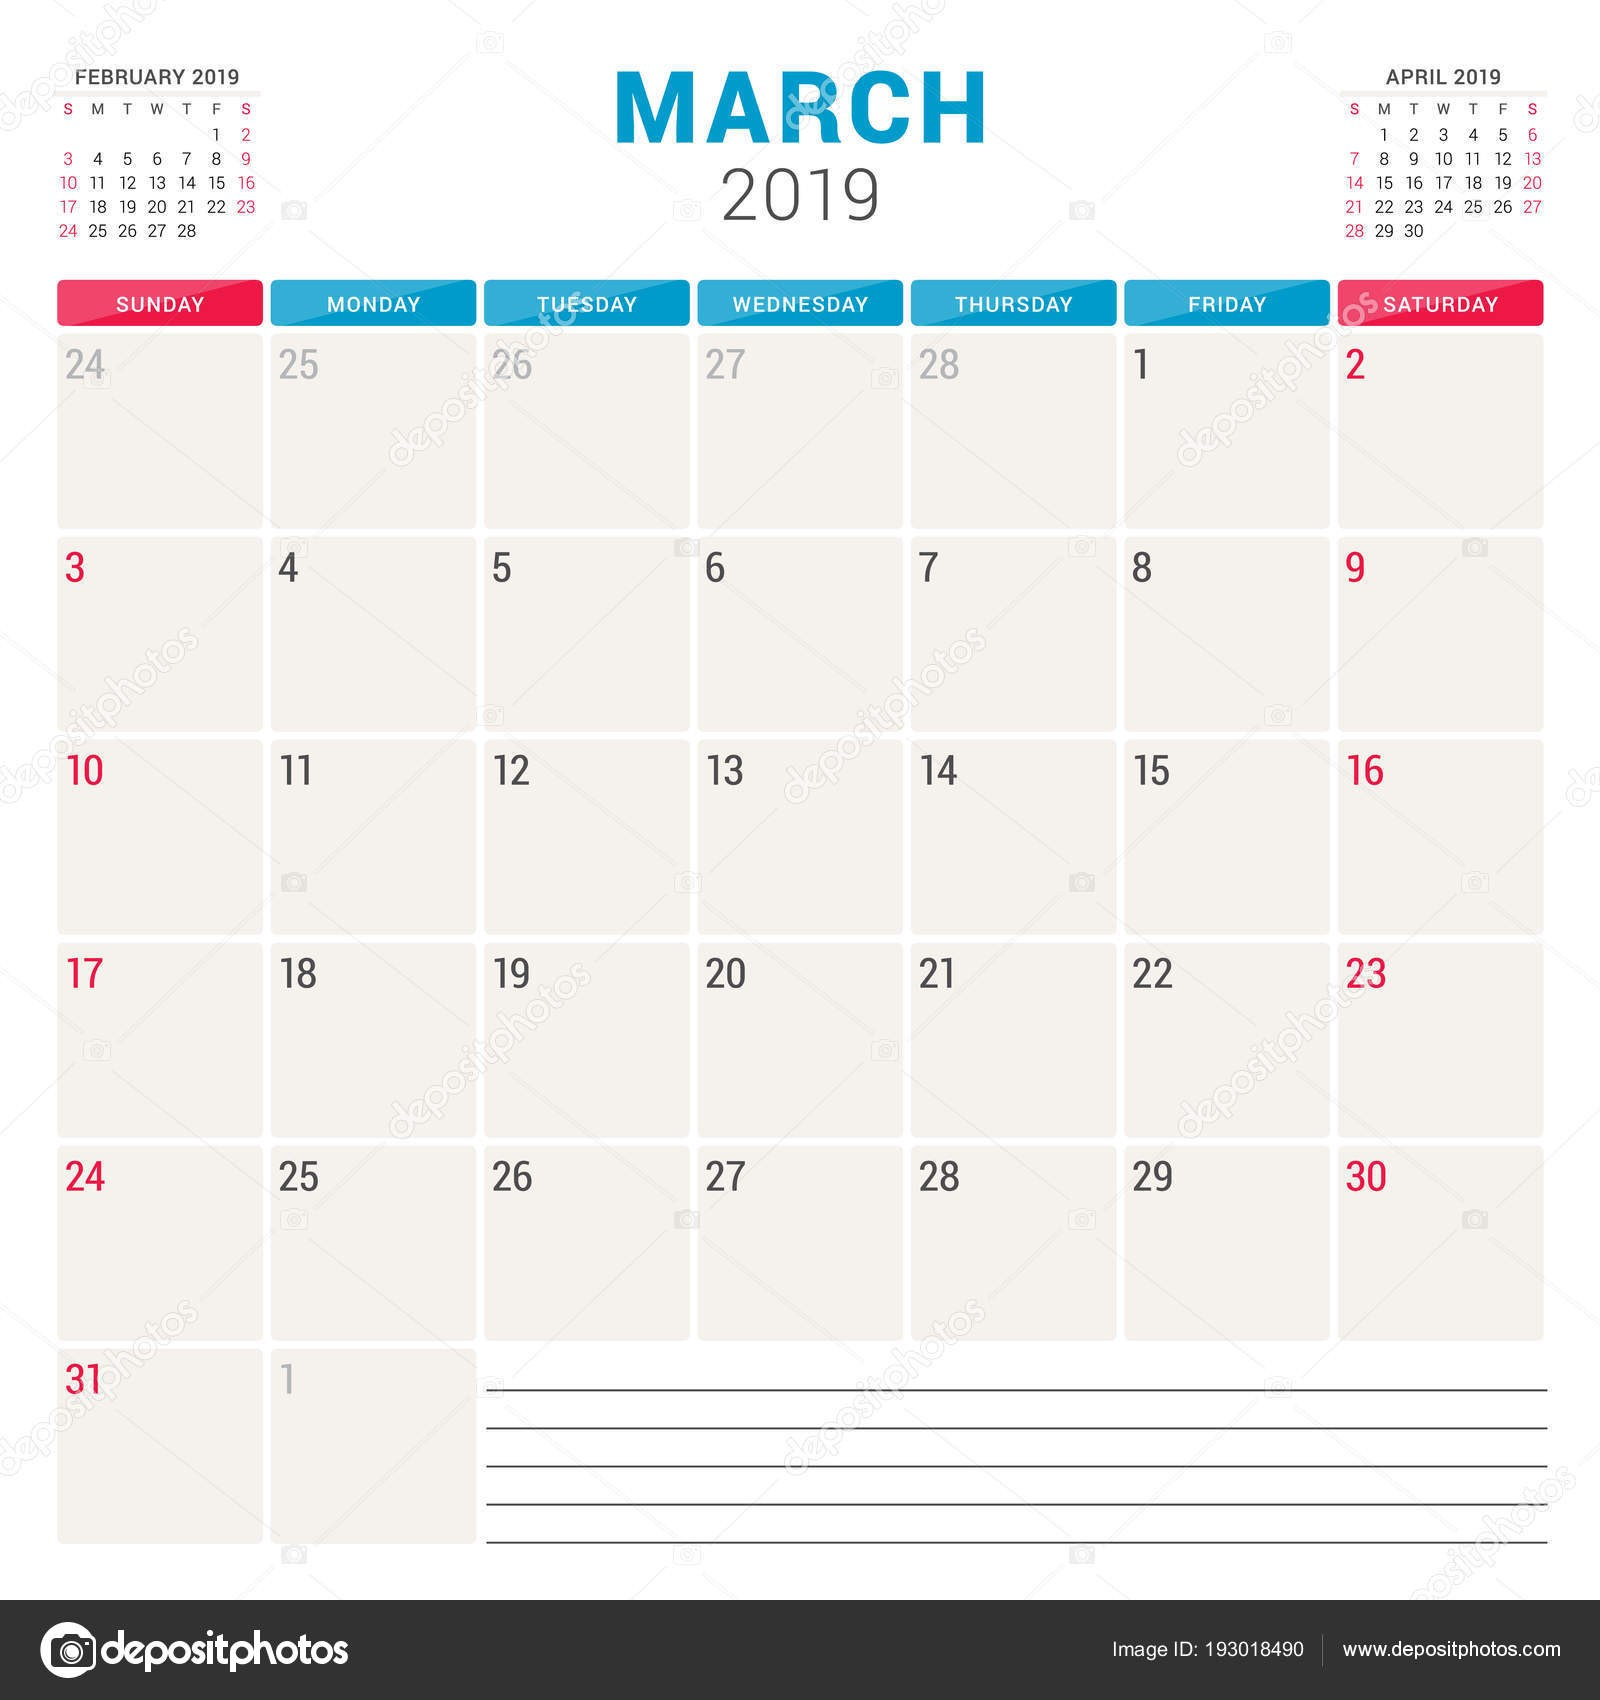 March Calendar 2019 Más Caliente Calendar Planner for March 2019 Week Starts On Sunday Printable Of March Calendar 2019 Más Recientes March 2019 Wall Calendar Colorful Sketch Horizontal Template Letter